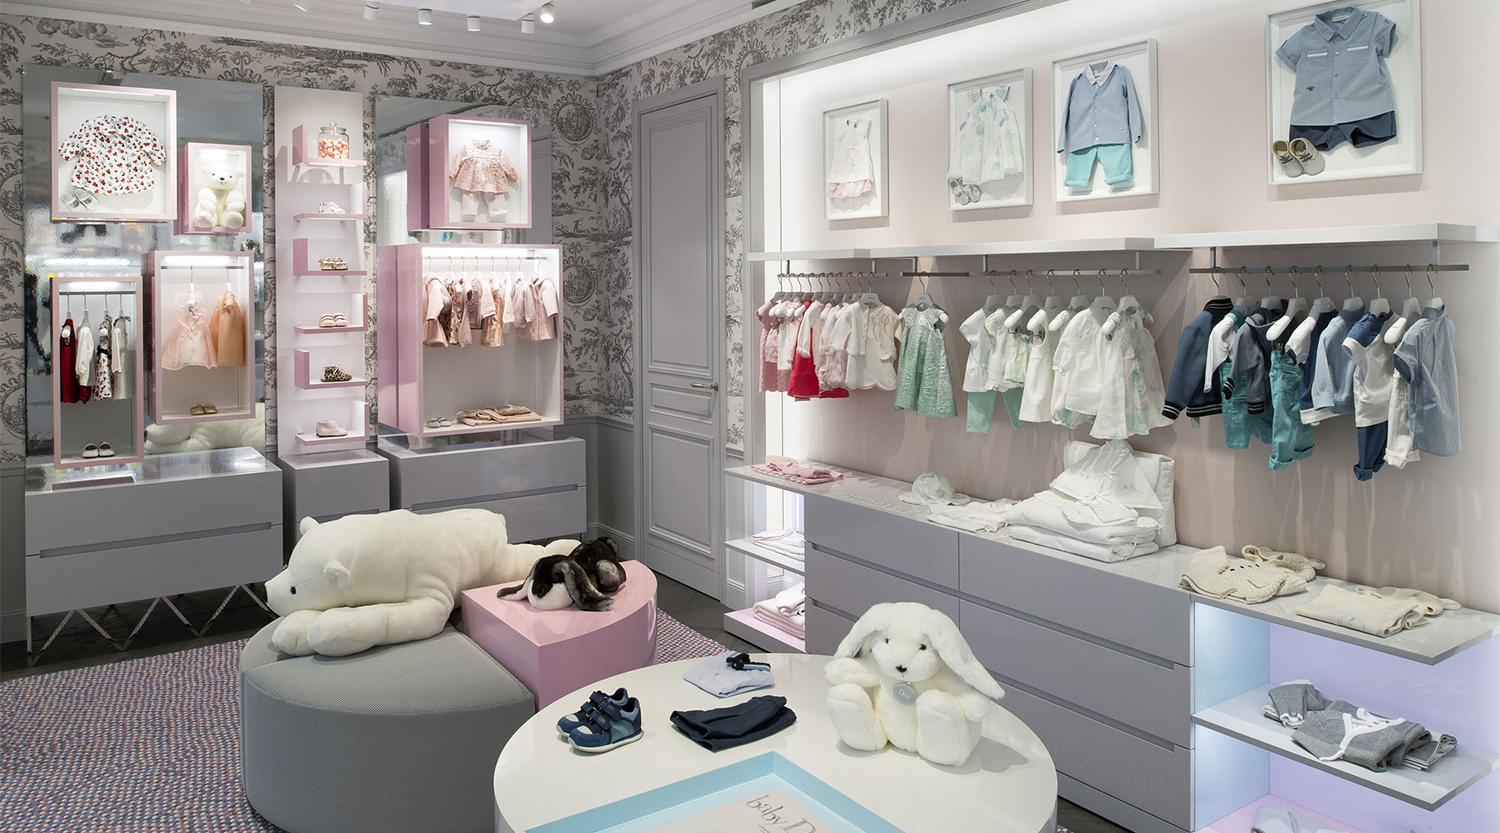 Find Terrific Gifts in a Baby Clothing Boutique